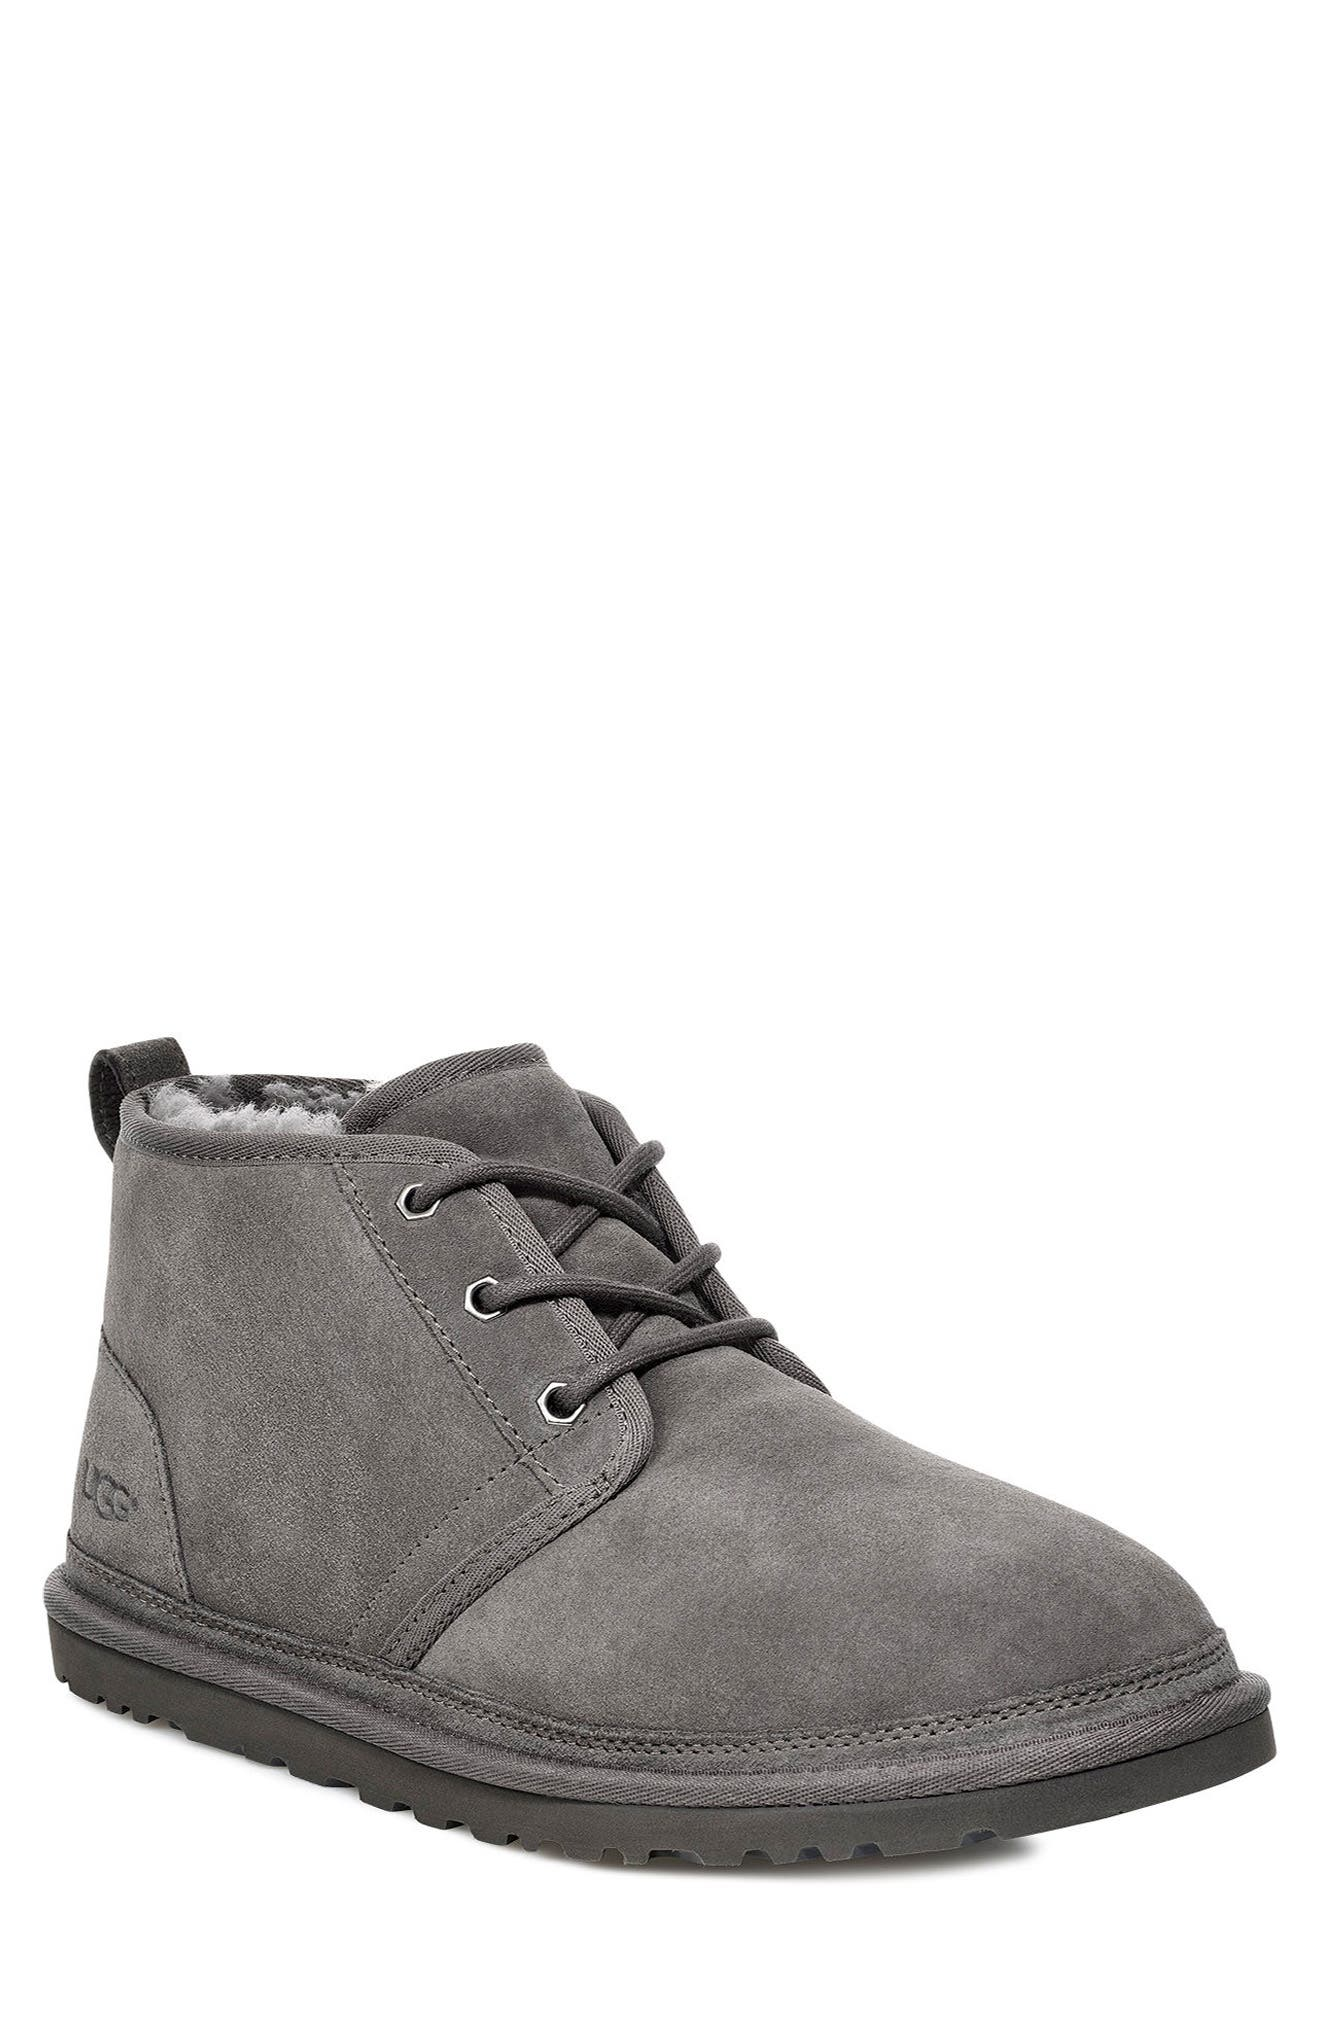 UGG<SUP>®</SUP>, Neumel Chukka Boot, Main thumbnail 1, color, CHARCOAL SUEDE